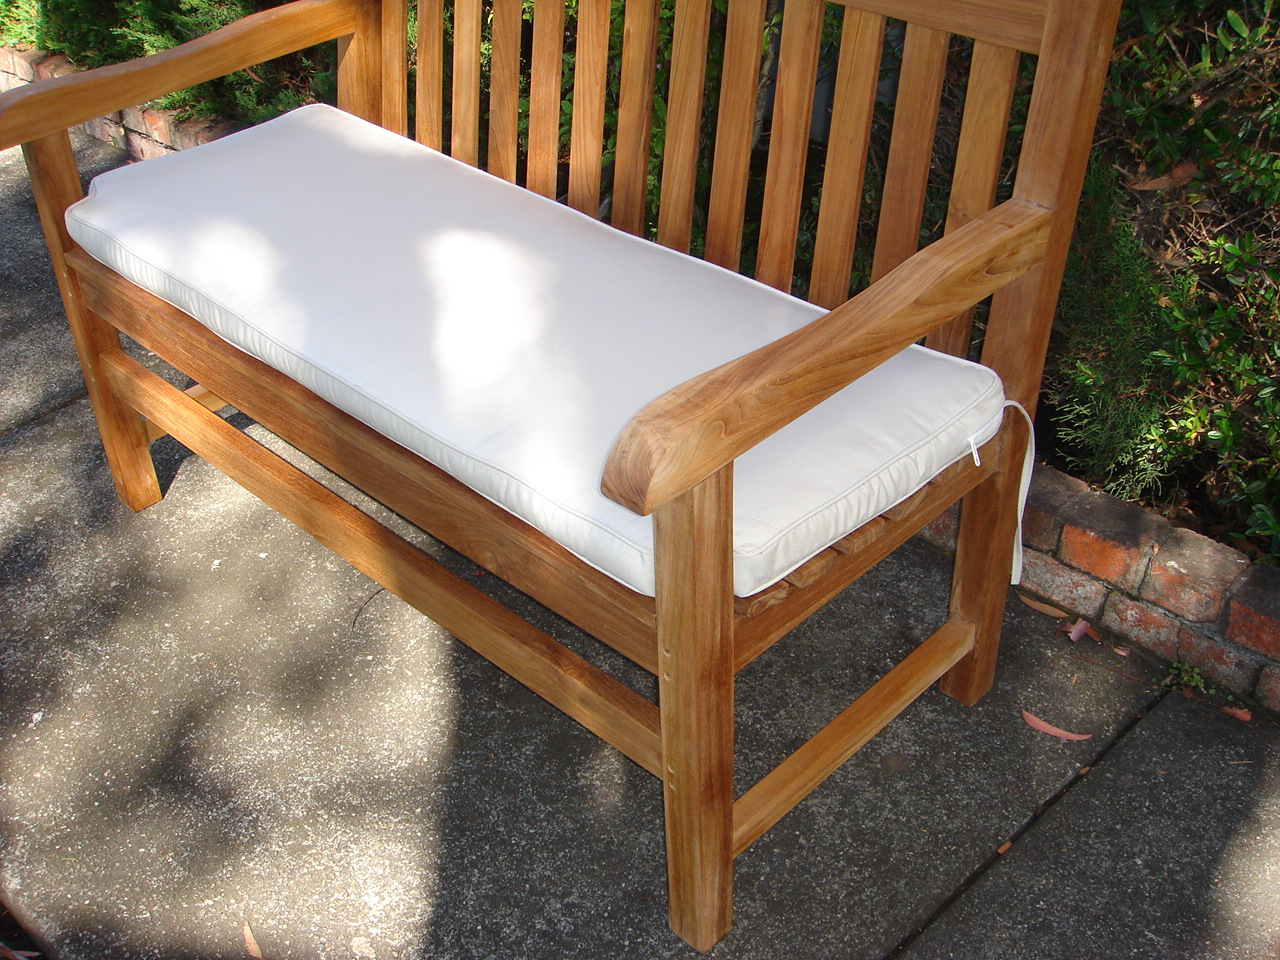 outdoor bench cushion 5 feet - Outdoor Bench Cushion